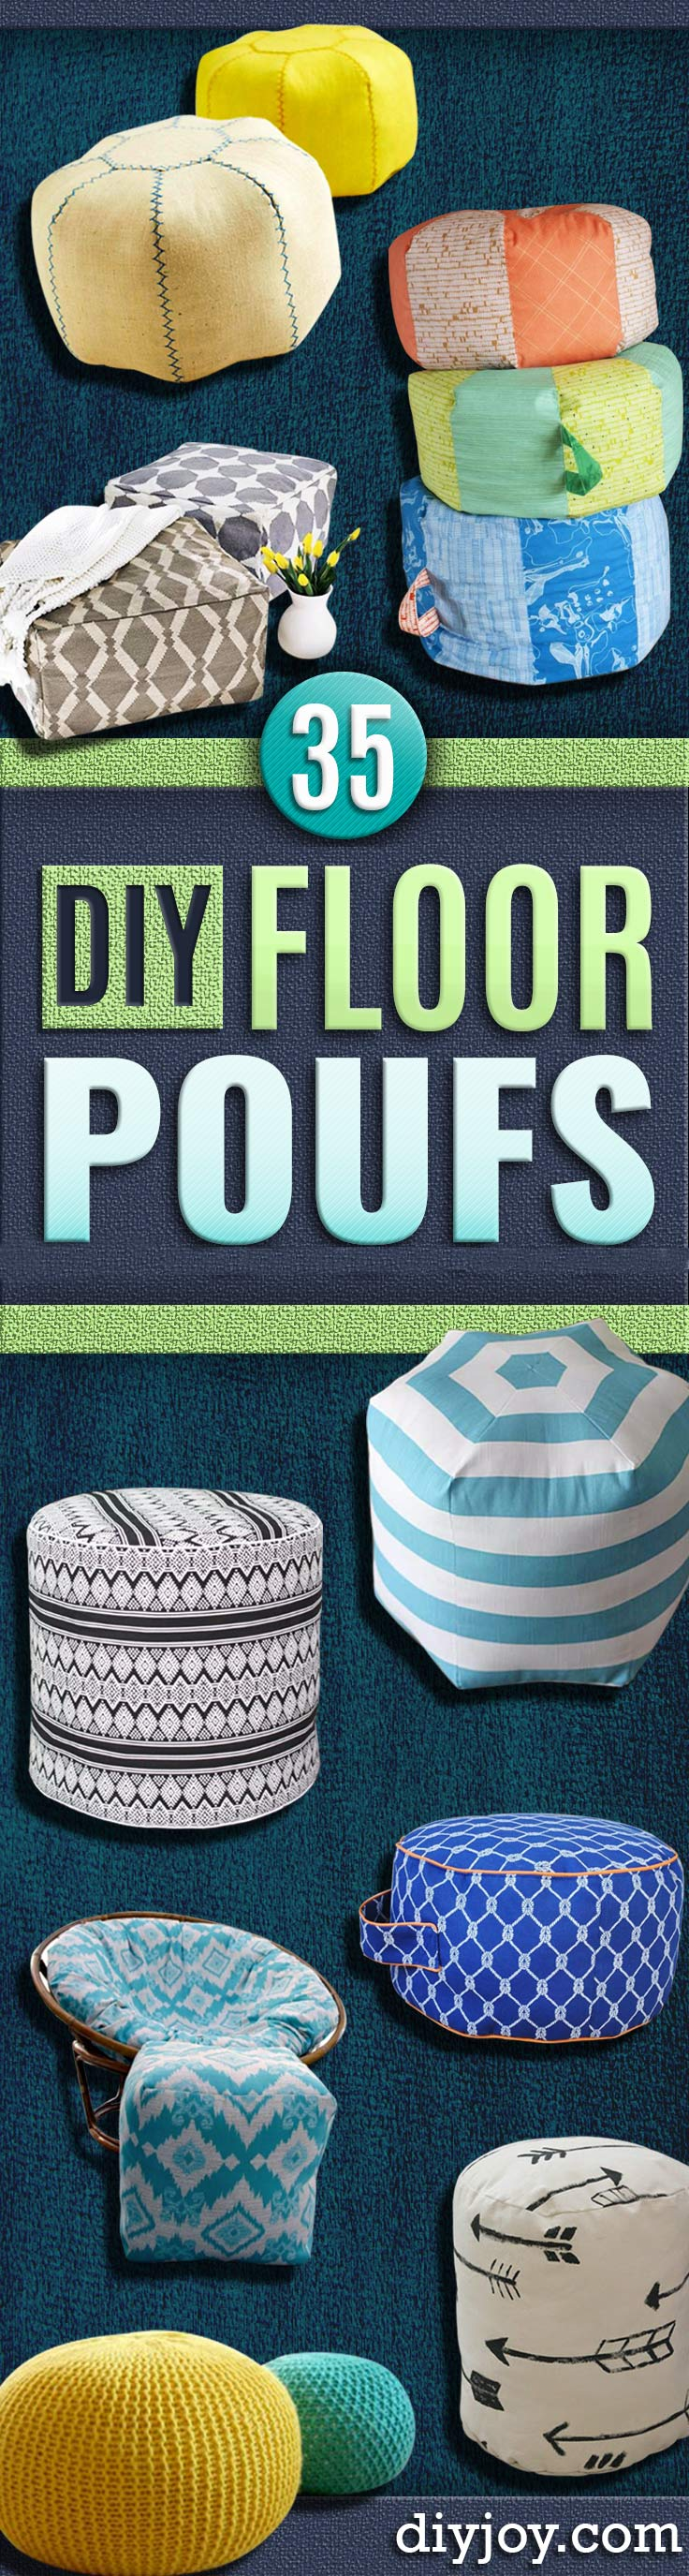 32 Fabulous Diy Poufs Your Living Room Needs Right Now